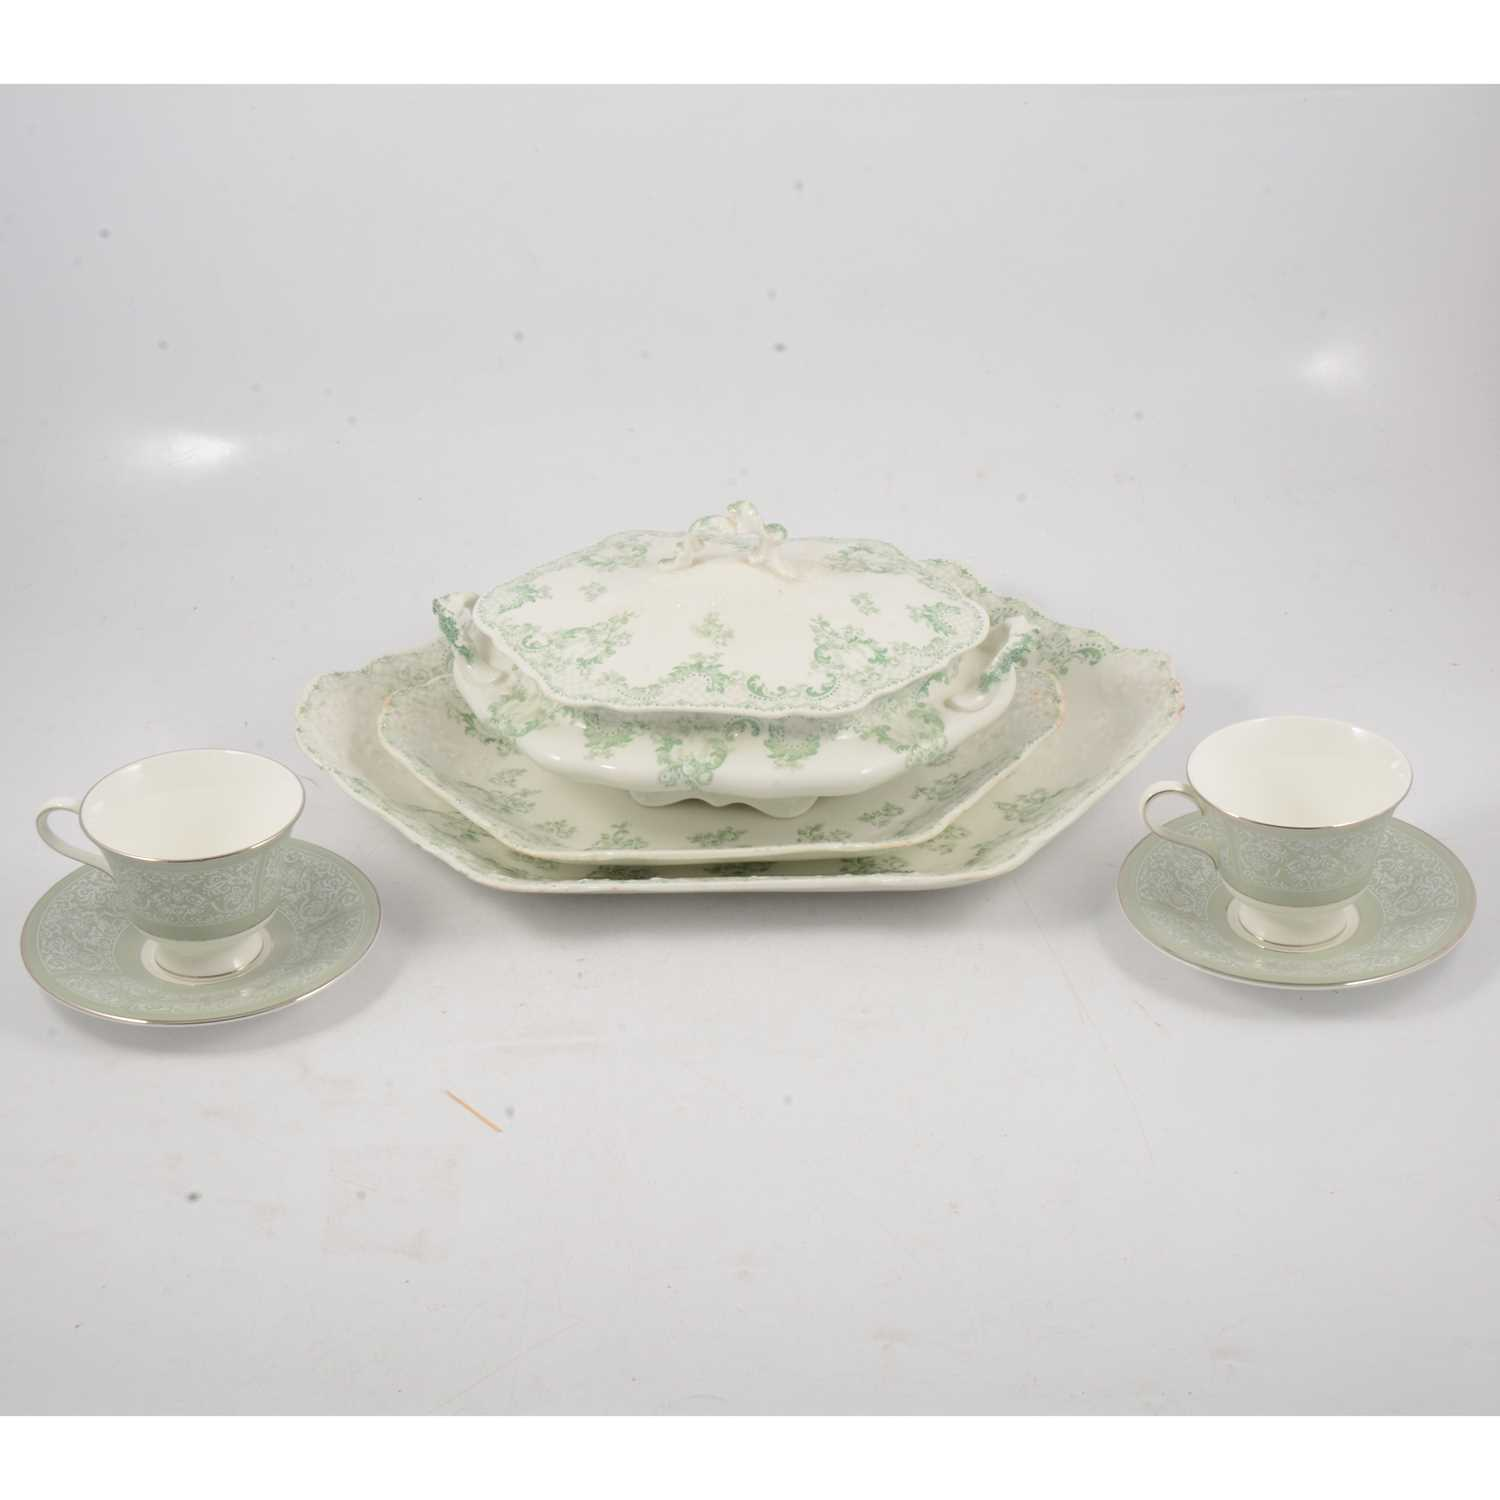 Lot 41 - Johnson Brothers green and white transfer printed ware.